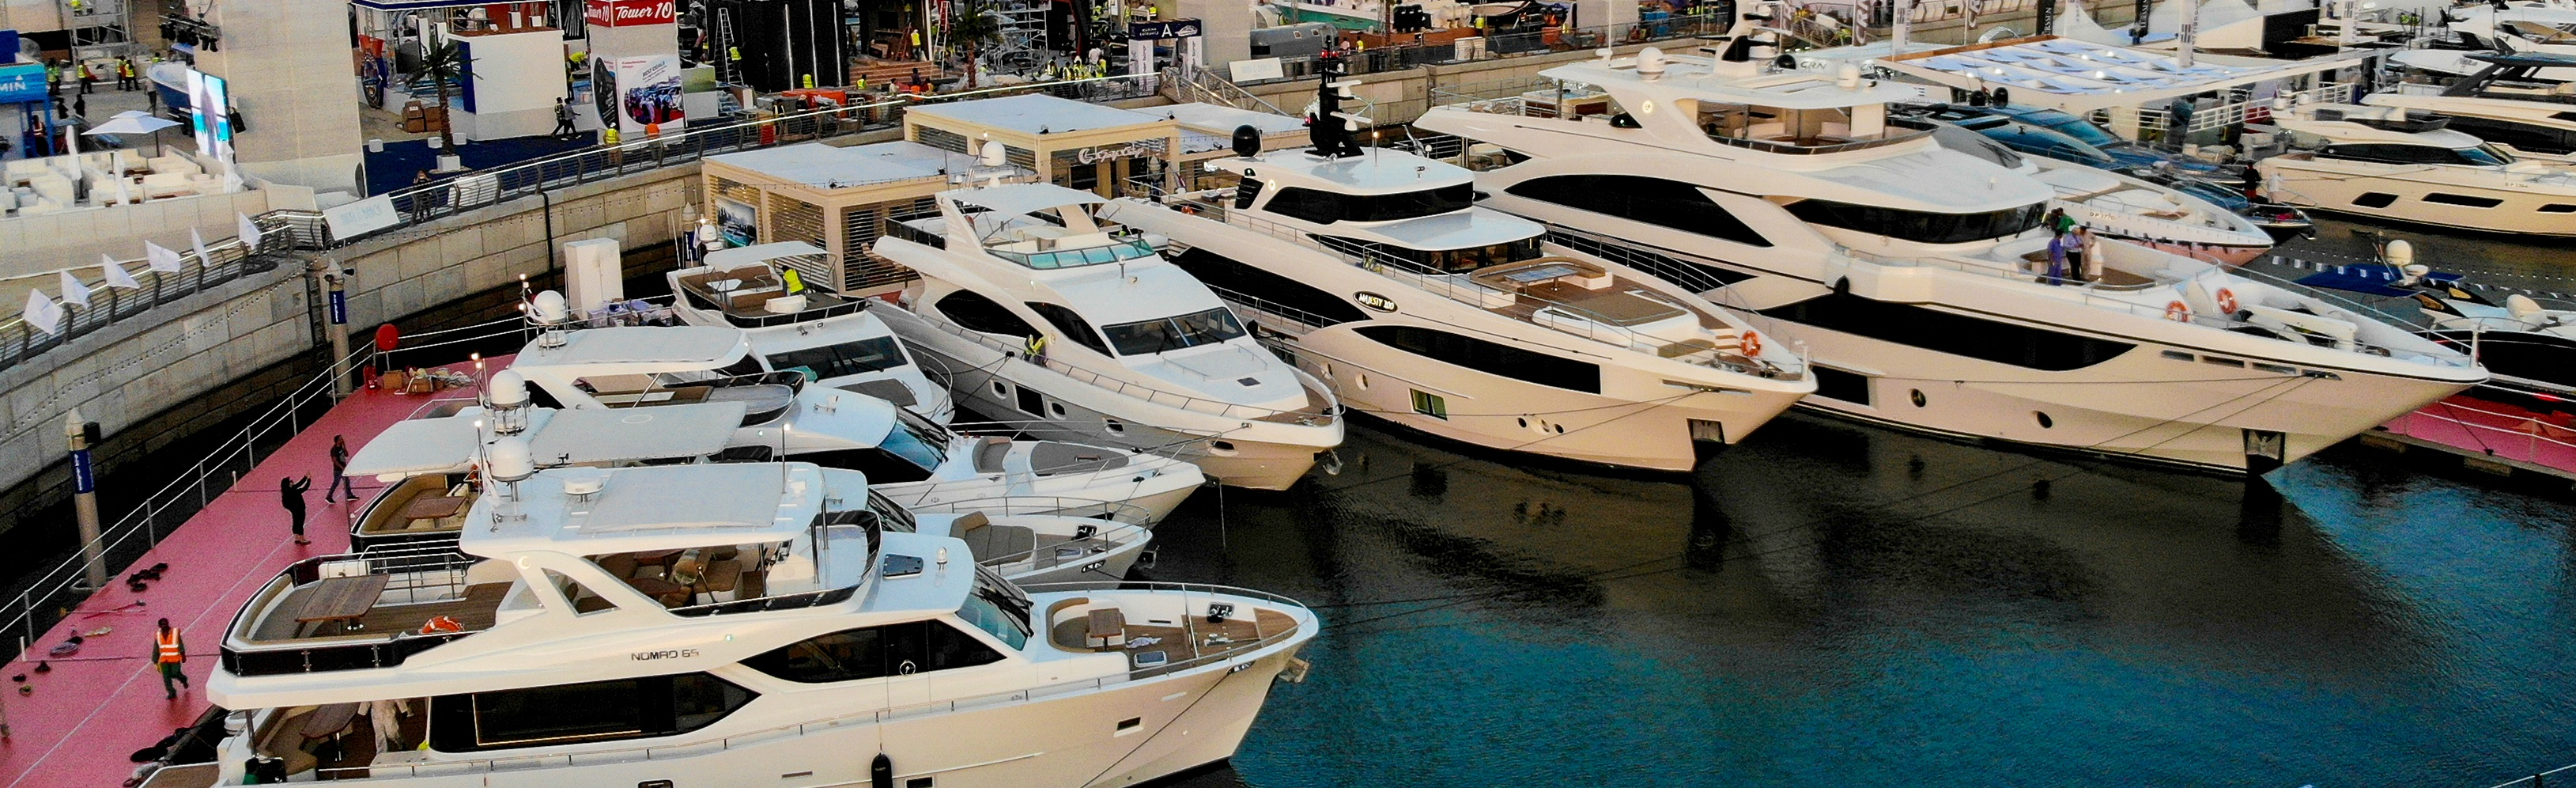 Gulf-Craft's-Yachts-and-Boats-at-the-Dubai-International-Boat-Show-2018-(4)